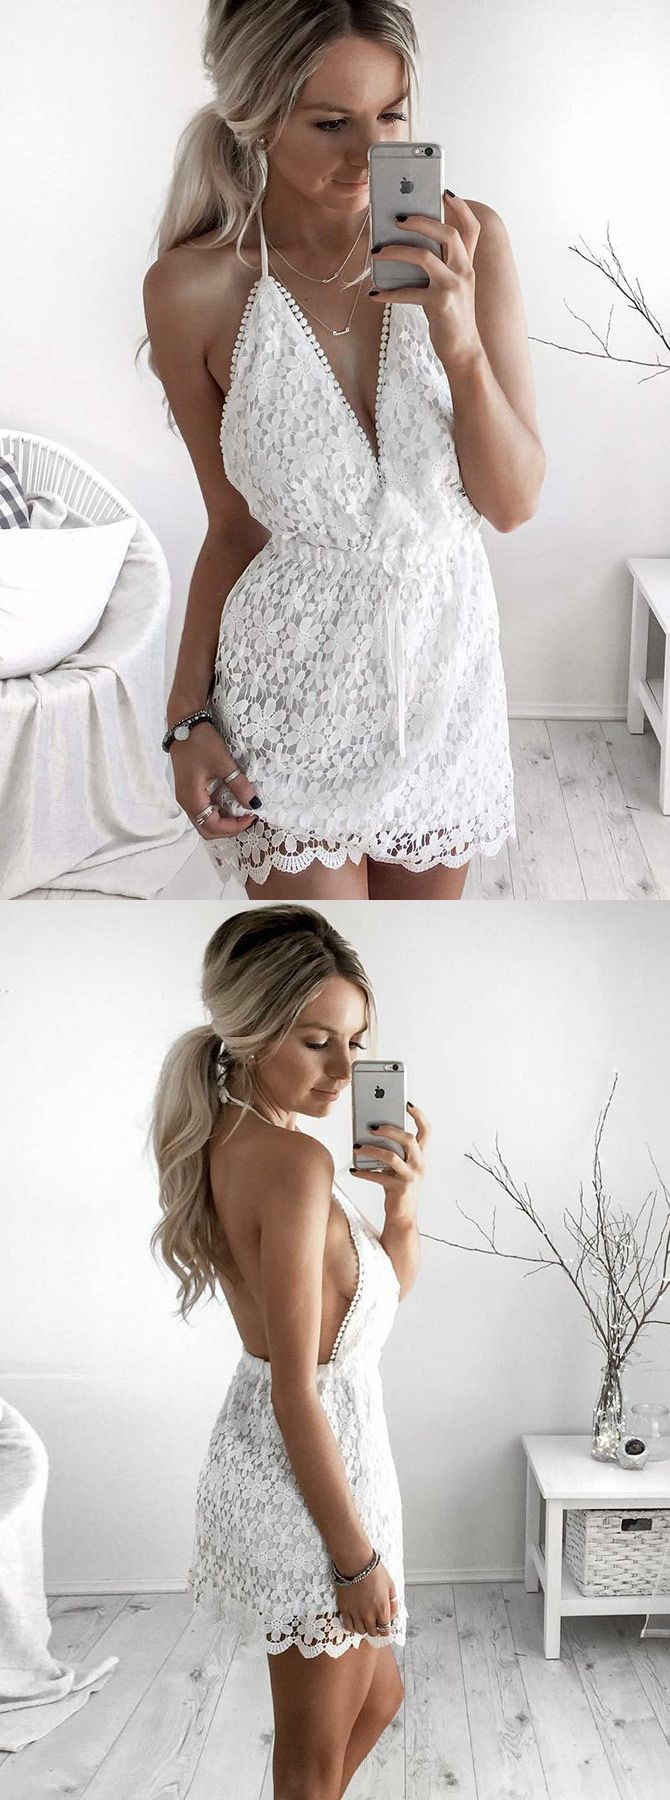 A Line Halter Backless Short White Lace Homecoming Cocktail Dress Lace Homecoming Dresses Backless Homecoming Dresses Homecoming Dresses [ 1800 x 670 Pixel ]